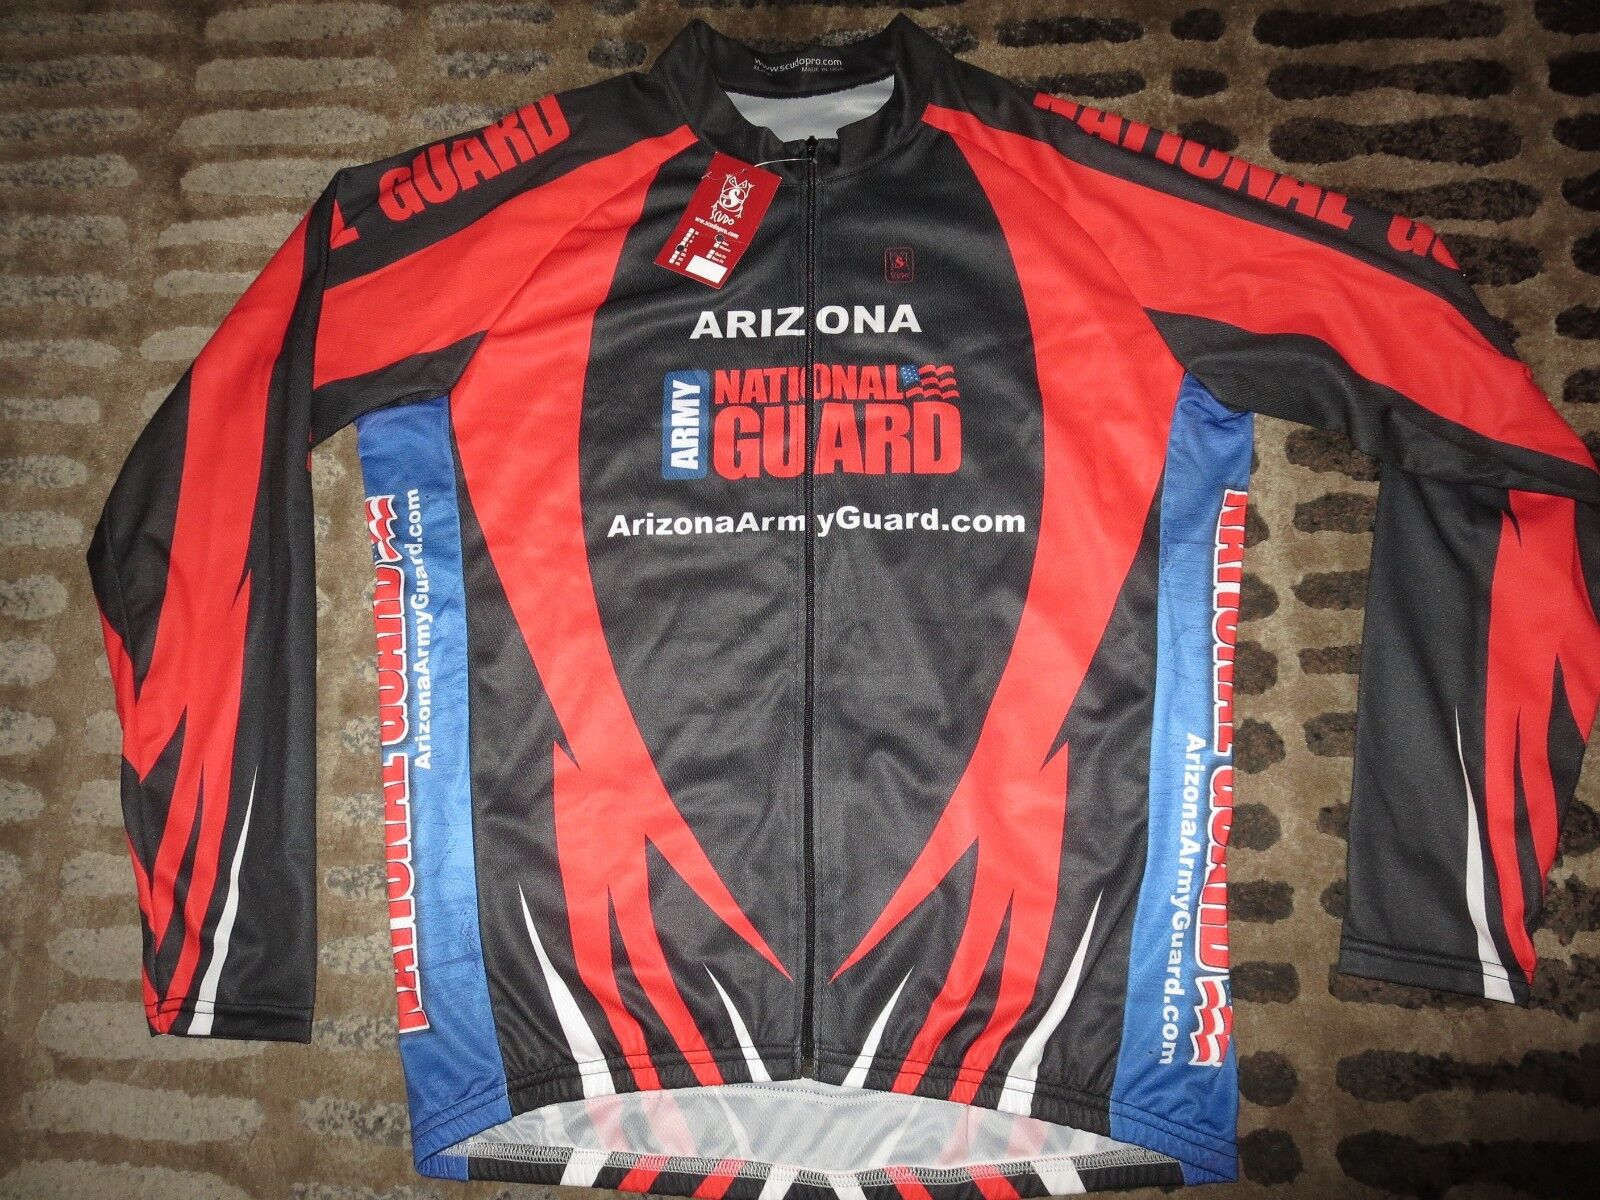 US Army National Guard Arizona Cycling Team  Scudo Jersey XL mens NEW  at the lowest price